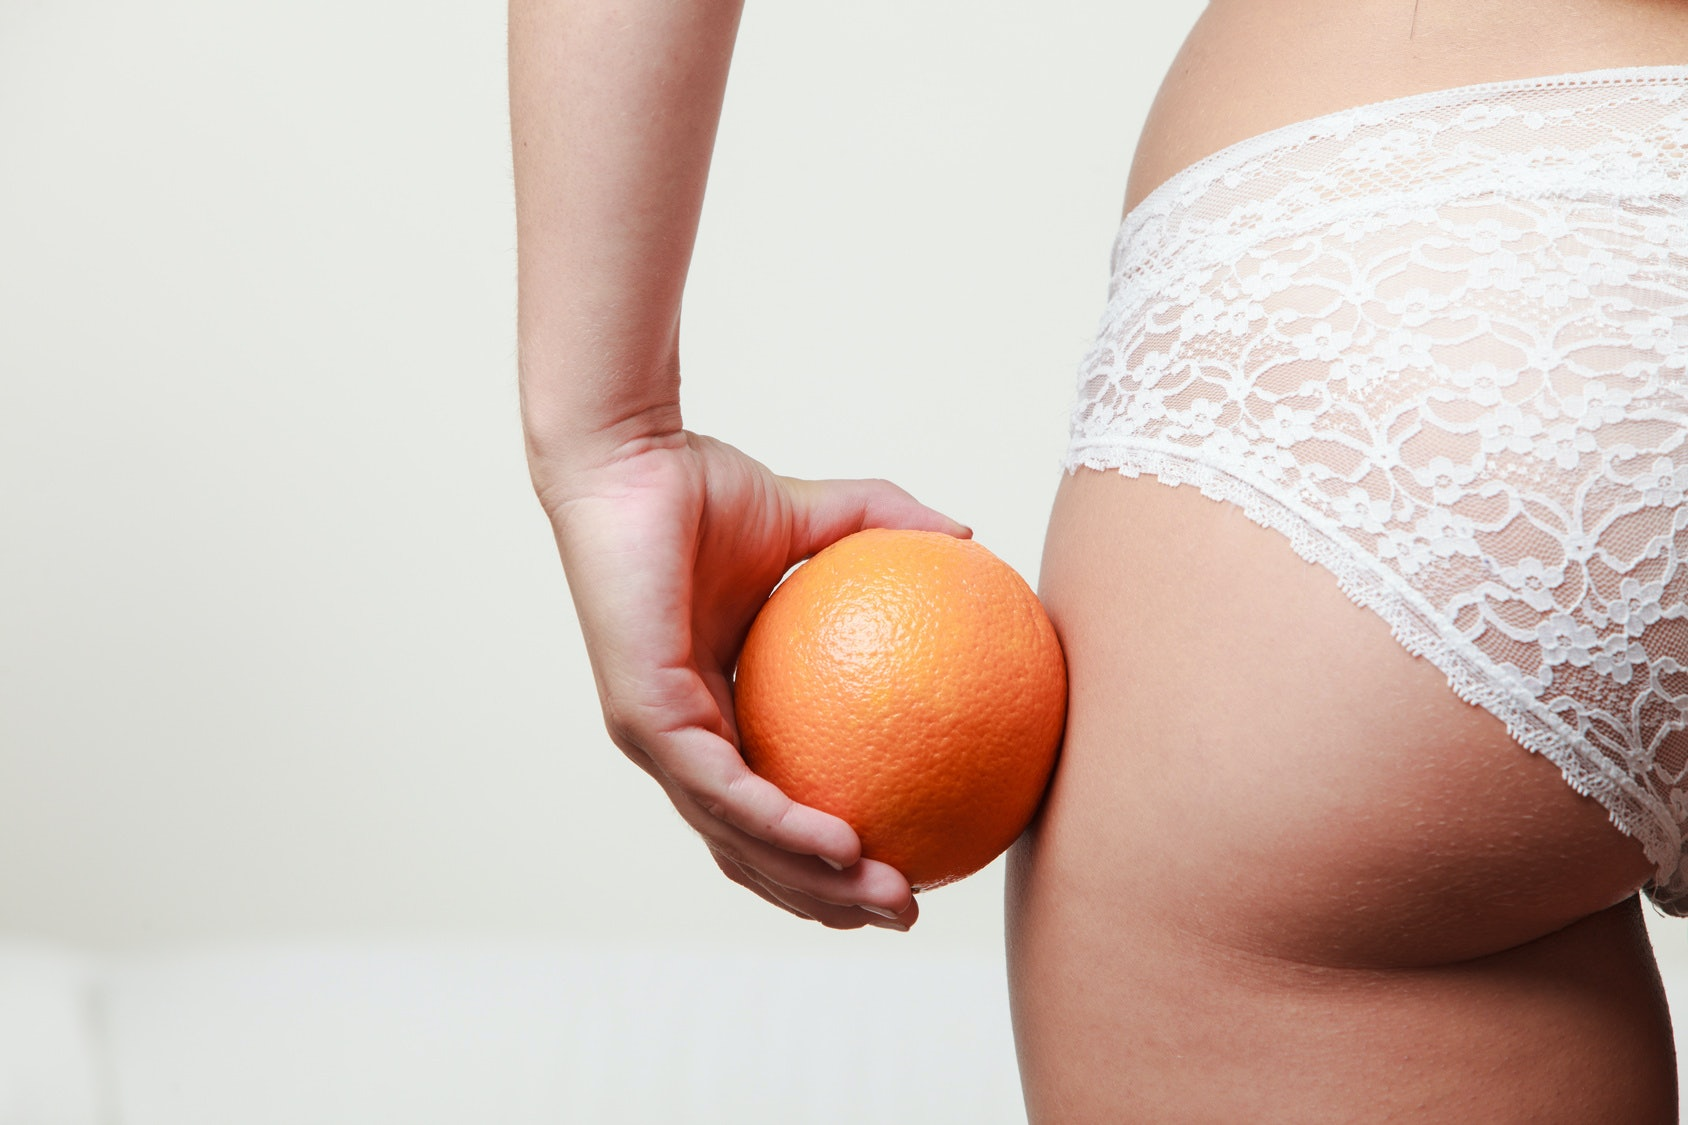 Anal leakage in pregnancy